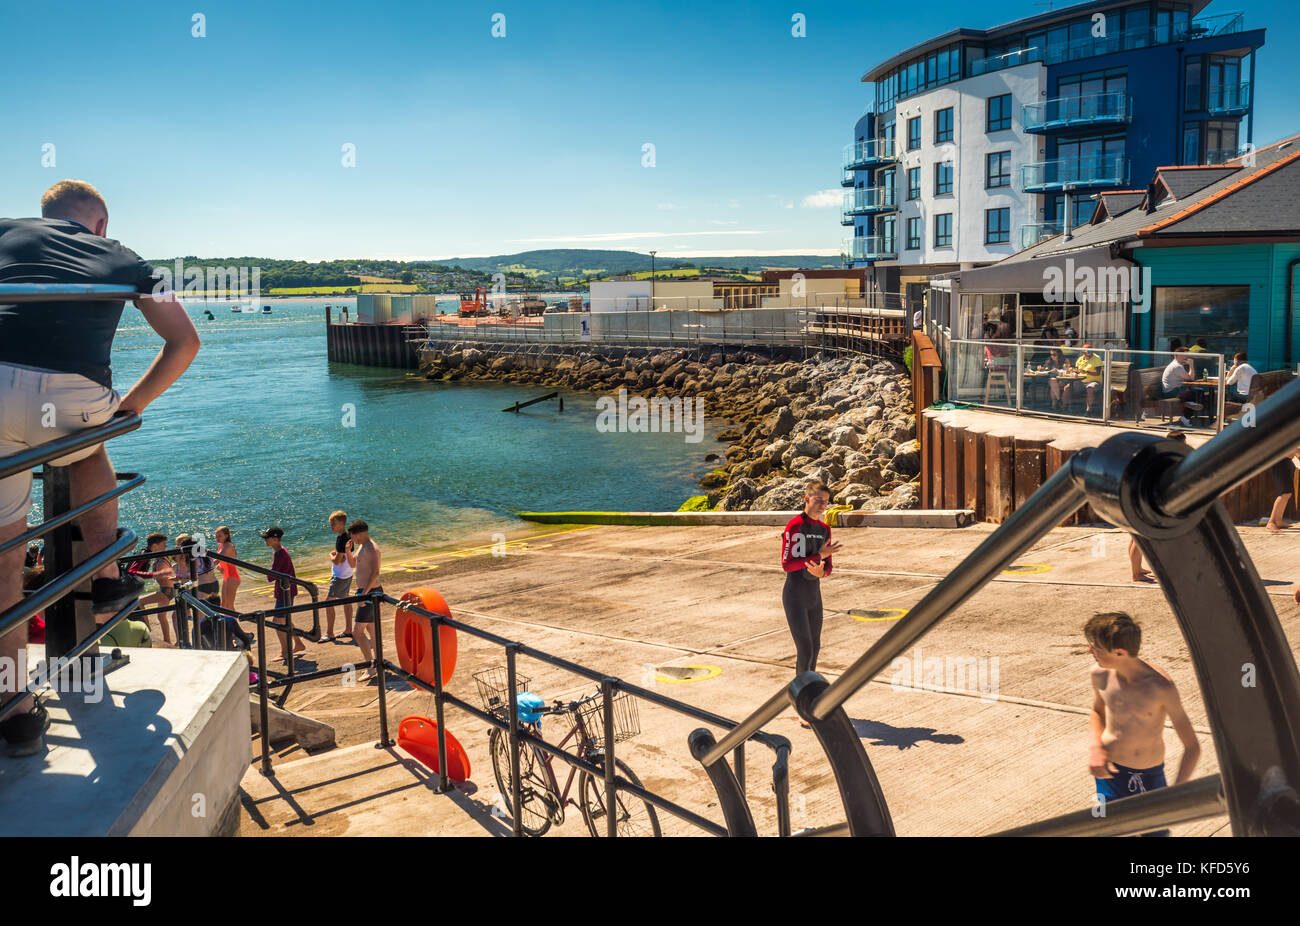 Mamhead slipway, Exmouth, Devon, pier, sea, cafe, Lyme bay, children bathing, bycycle, holidays, leisure, building - Stock Image